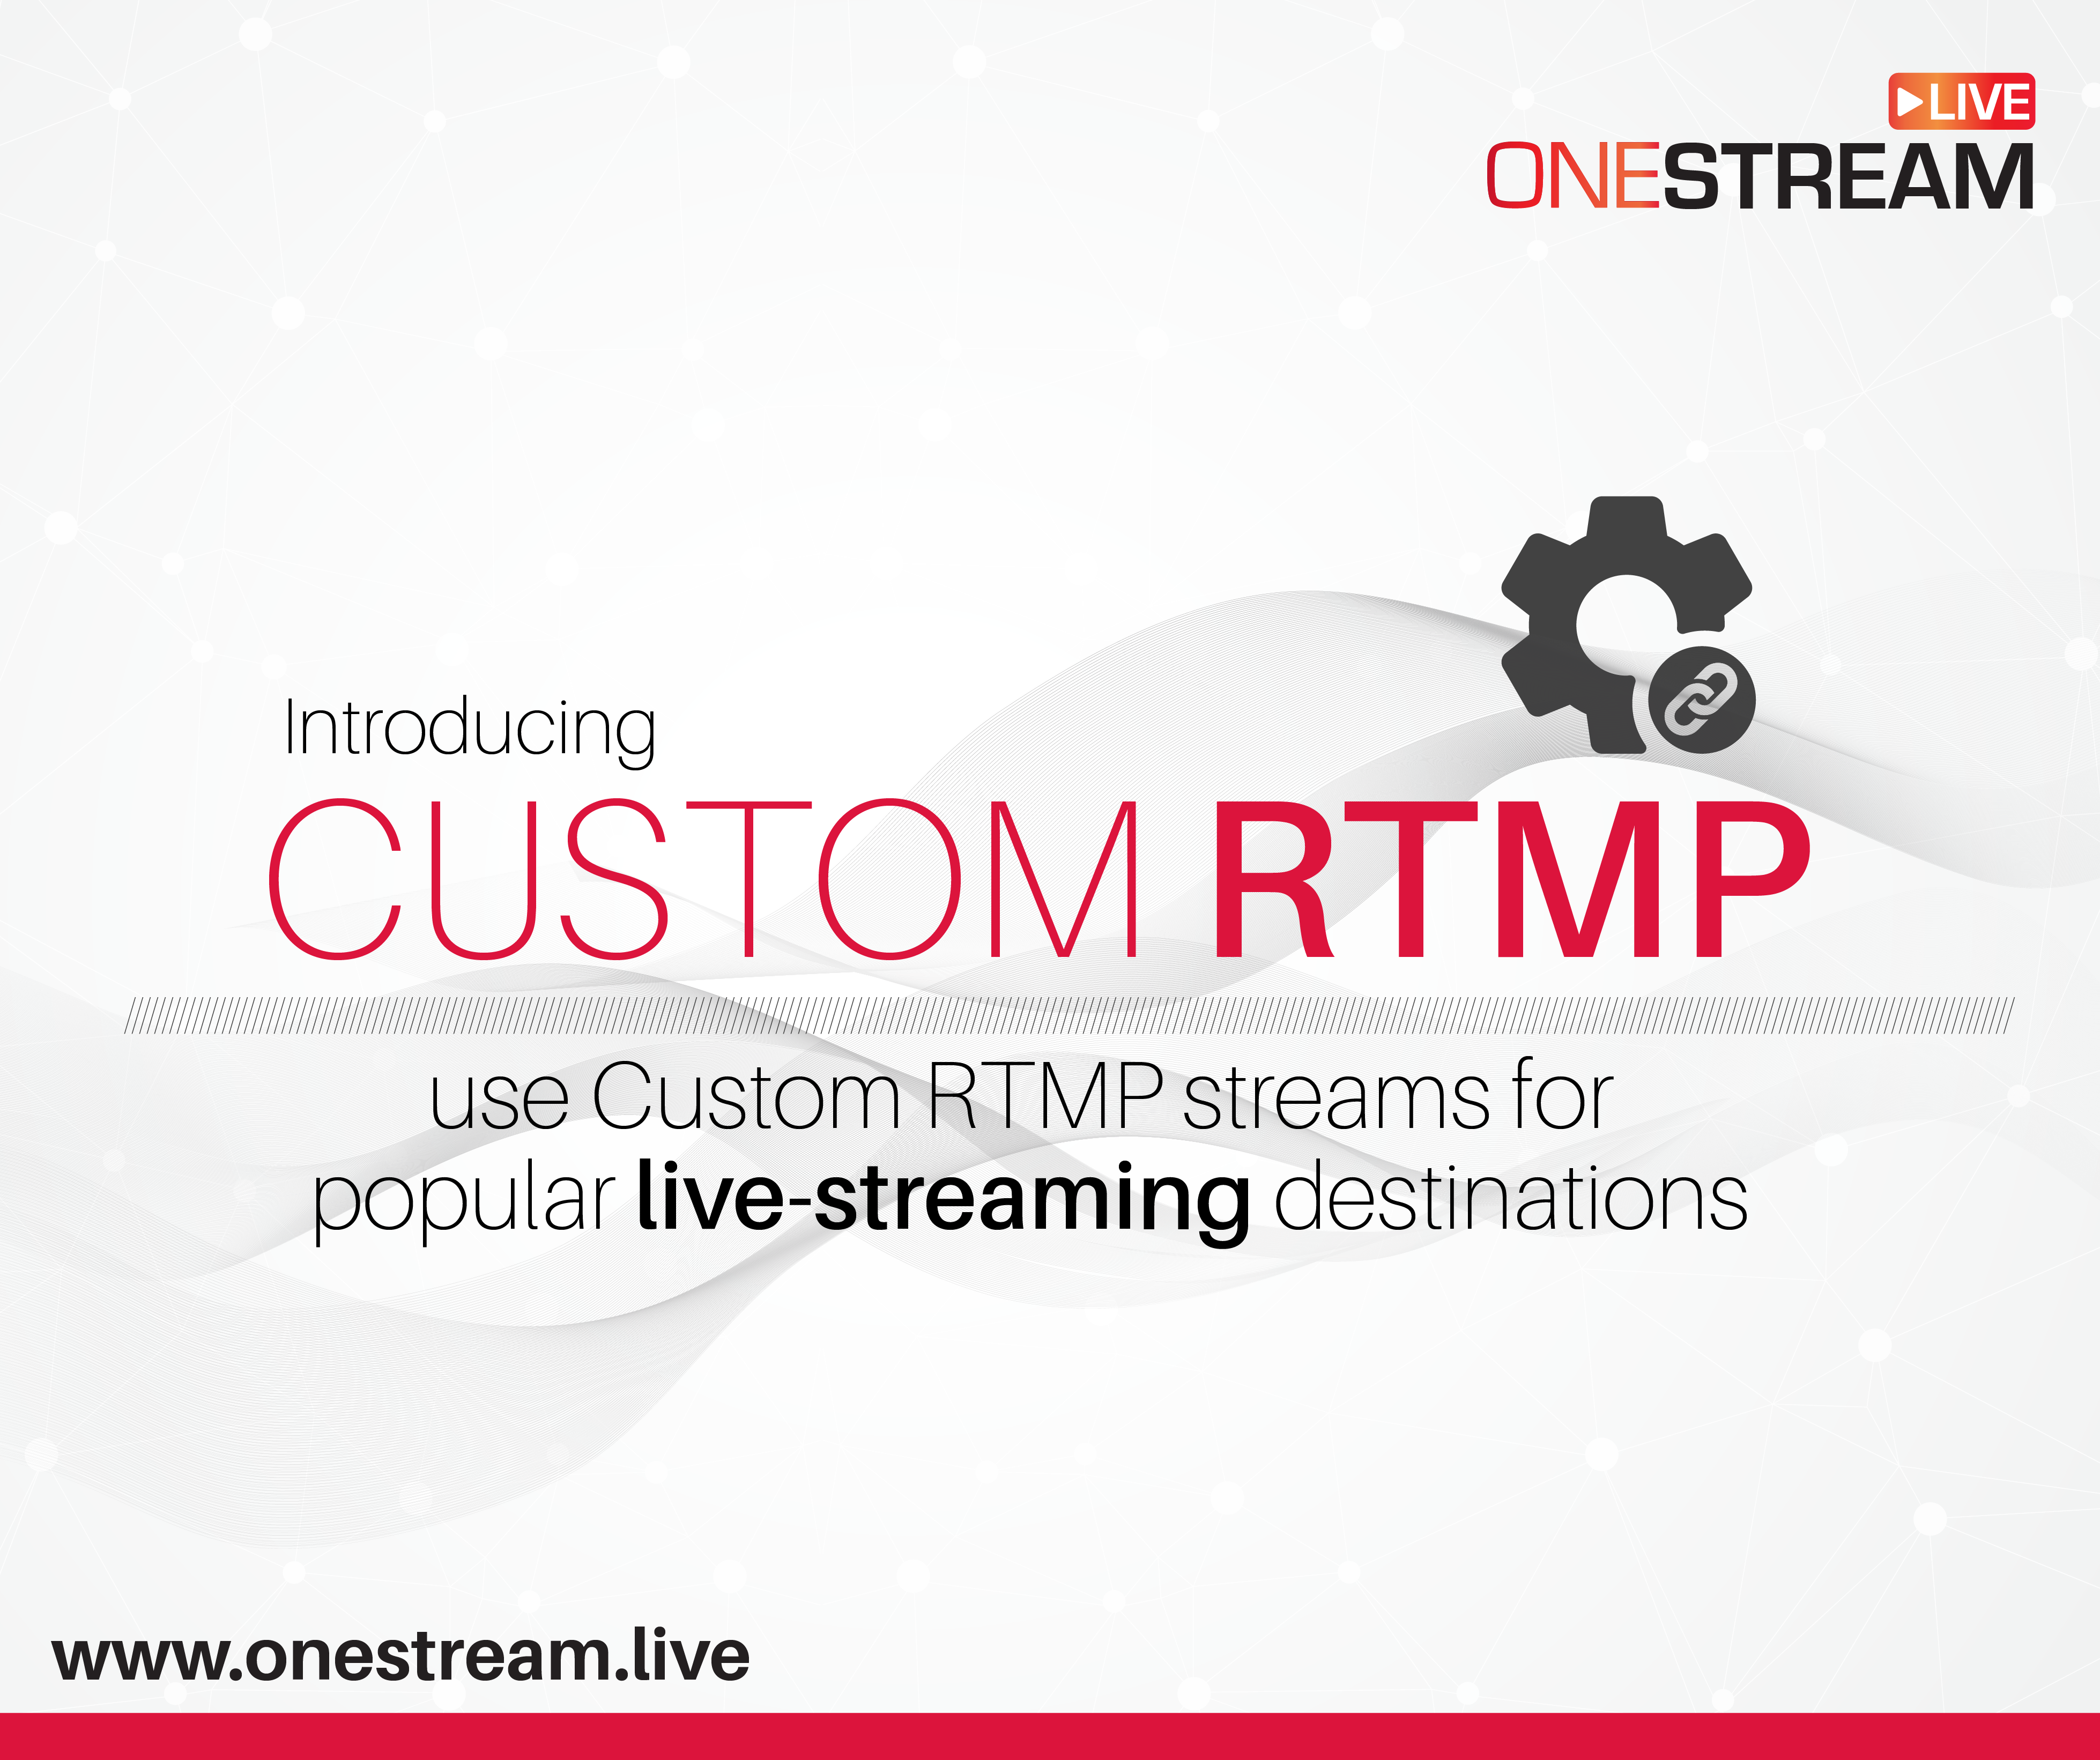 How to use Custom RTMP streams for popular live-streaming